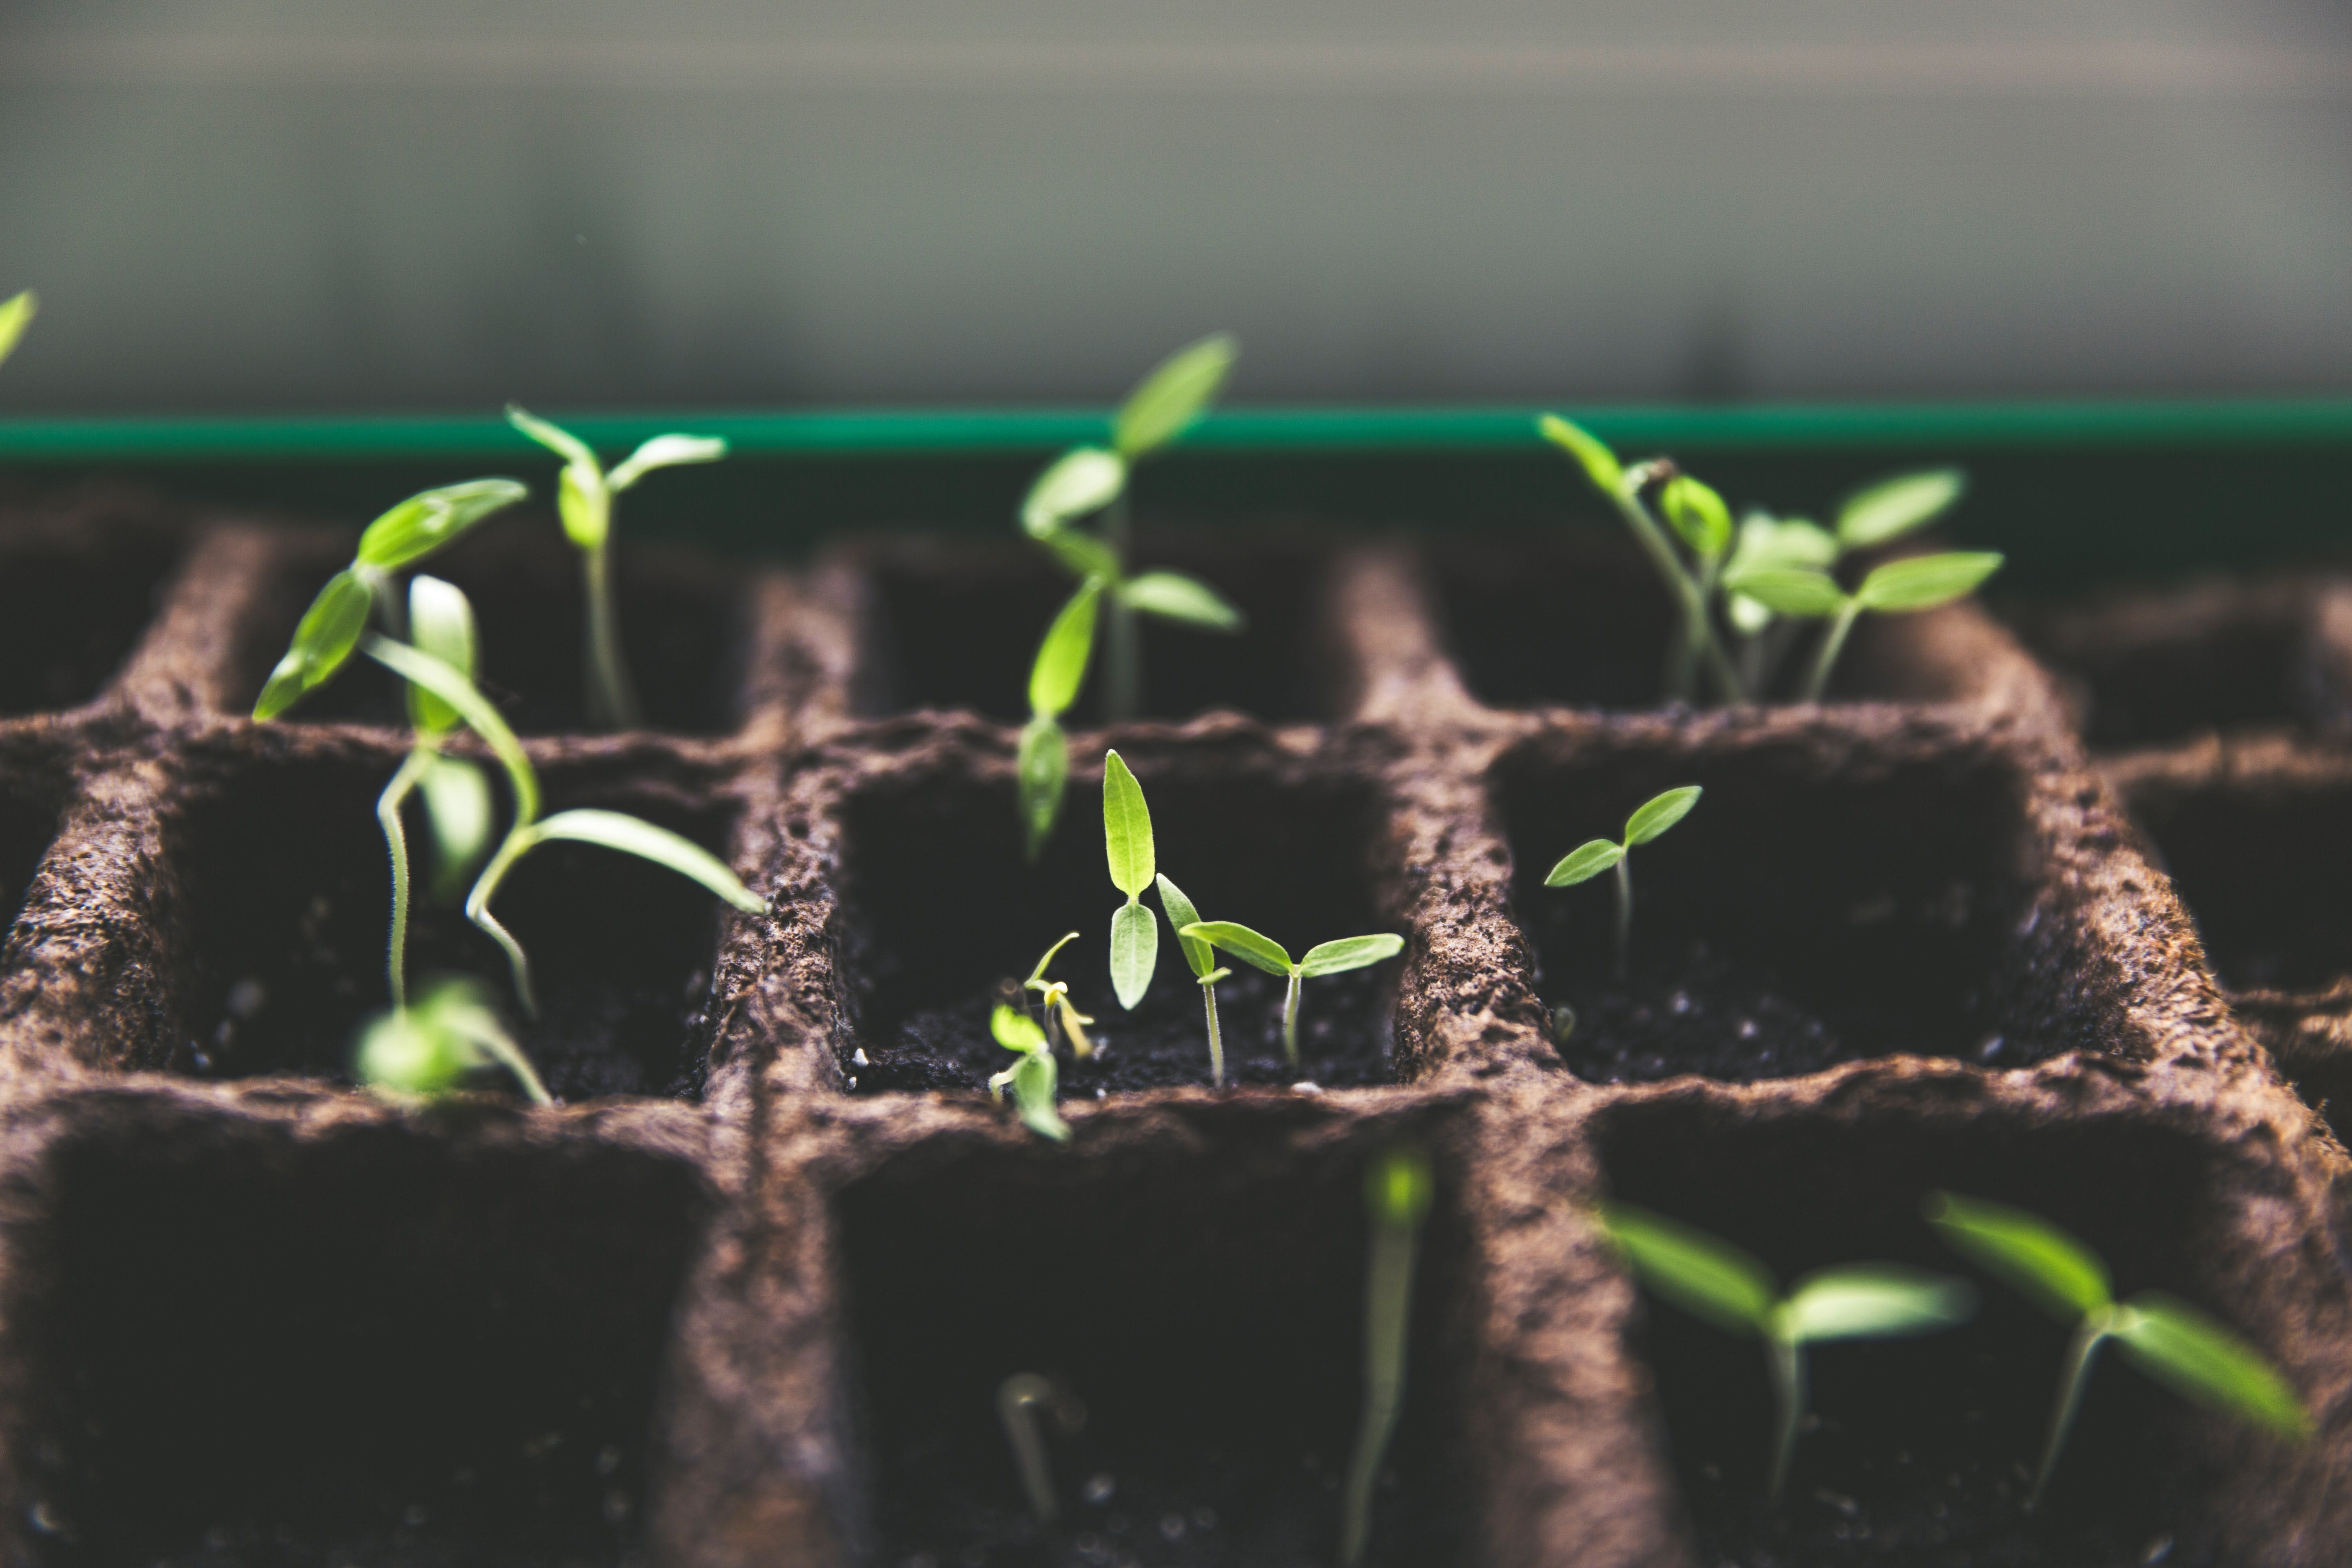 Just like seedlings planted and growing with sunlight care, Instagram followers won't grow without engagement and careful cultivation